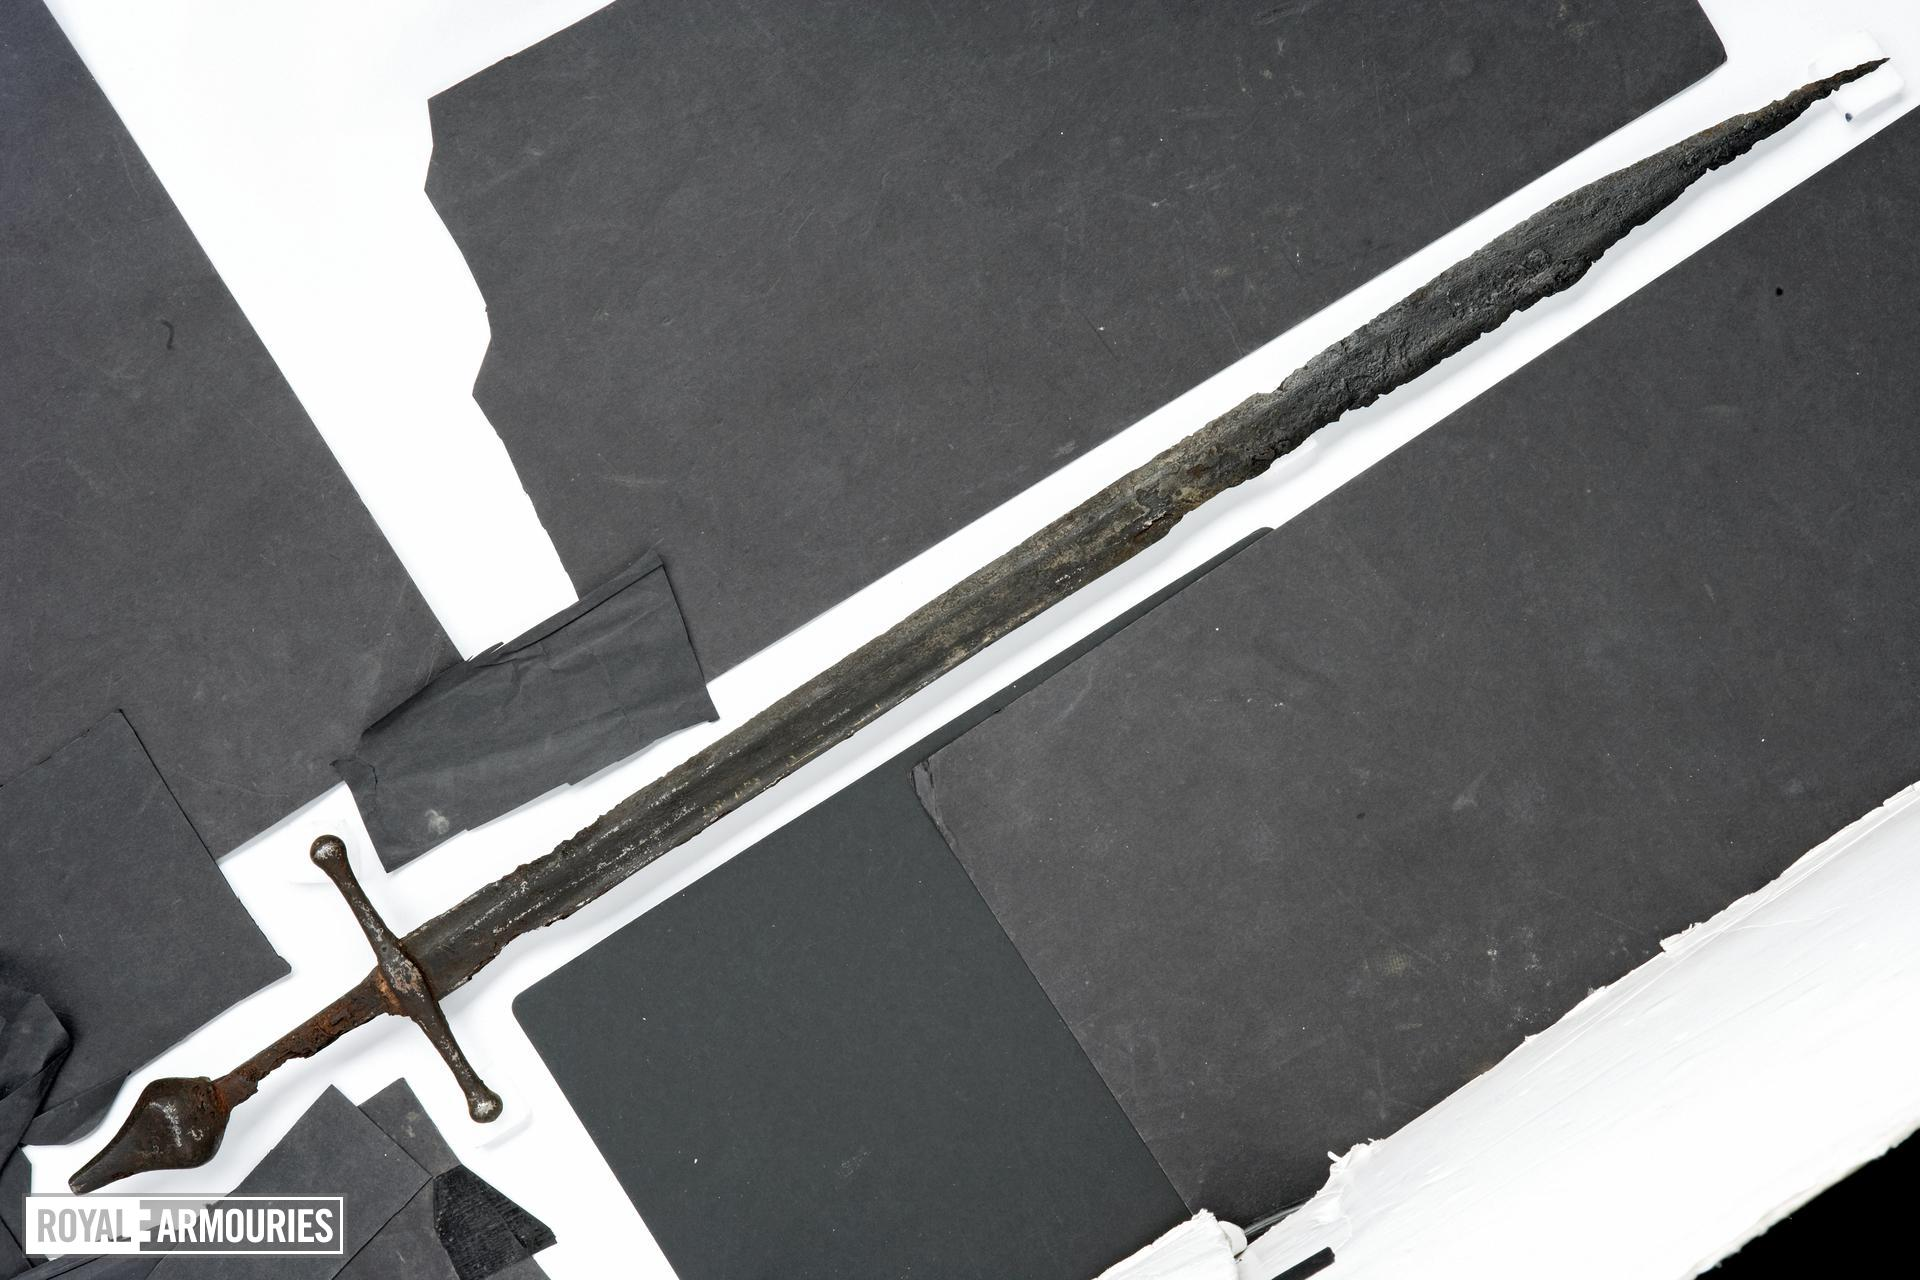 Sword Cross-hilted sword, with falchion-like blade